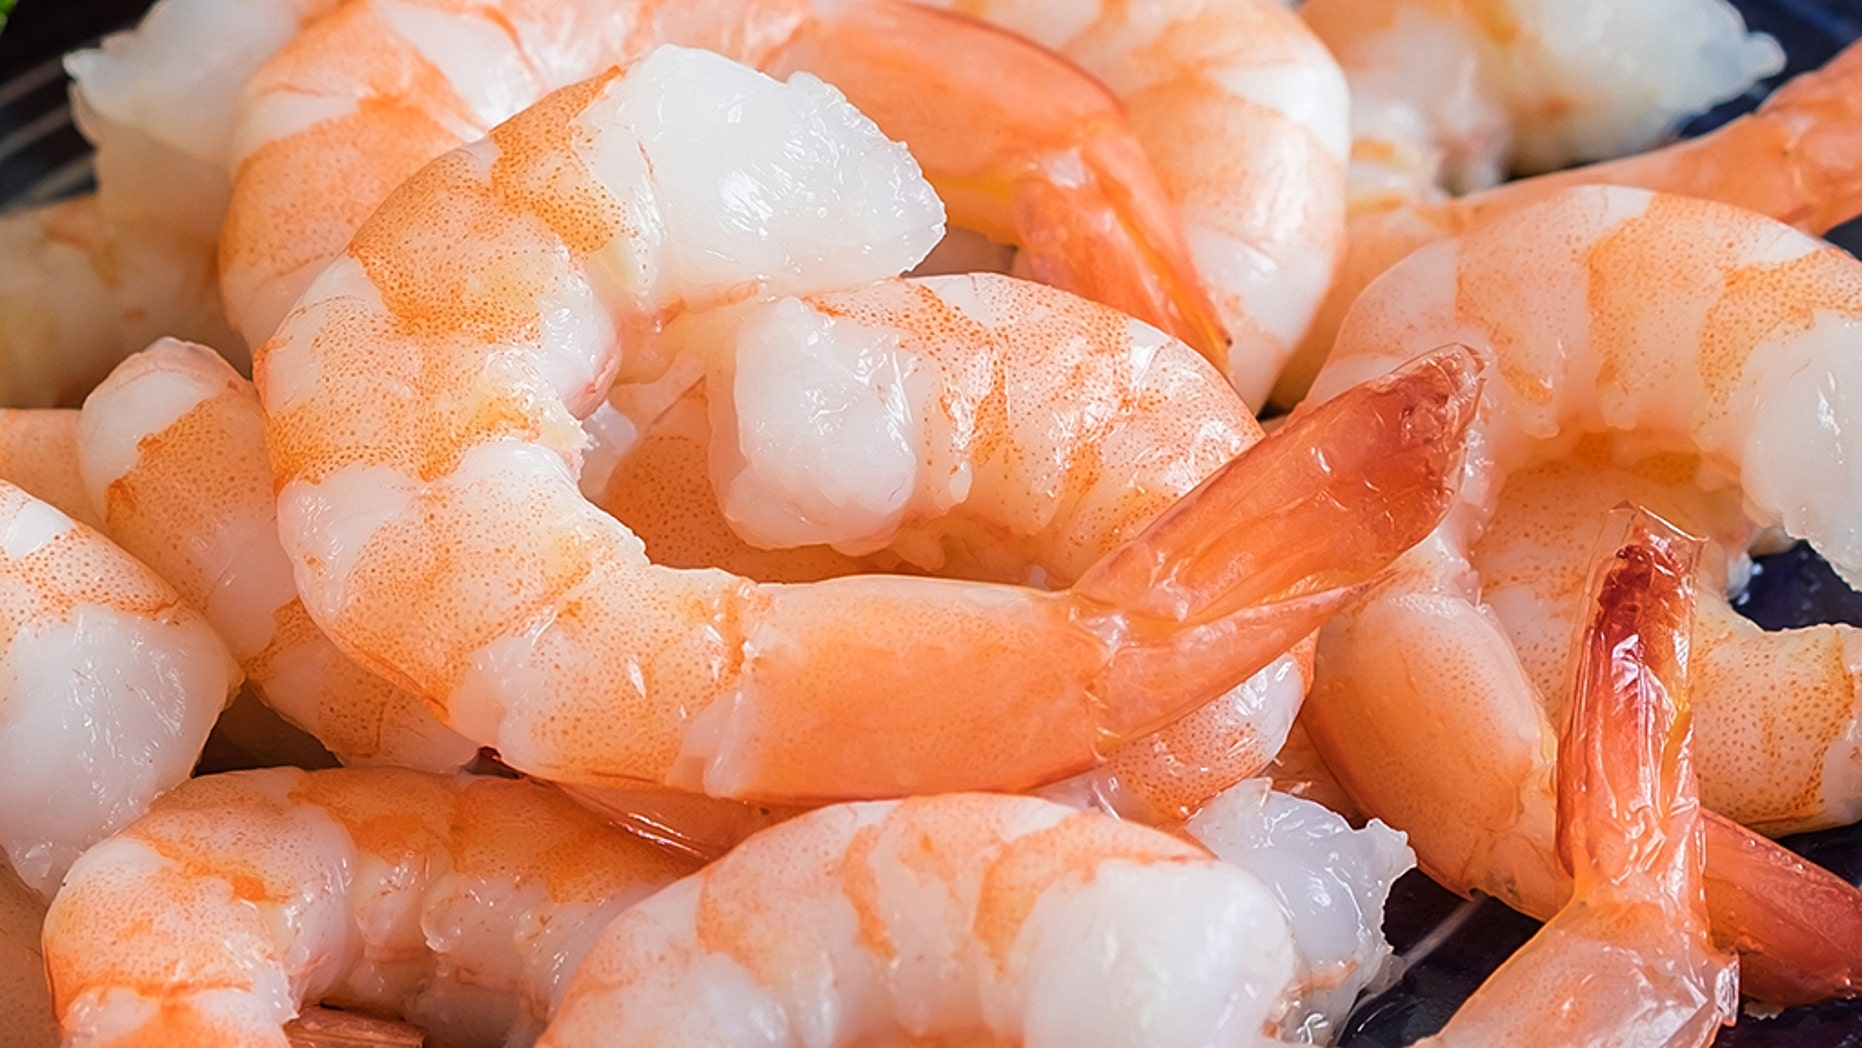 Kroger recalls shrimp products over possible foodborne illness risk